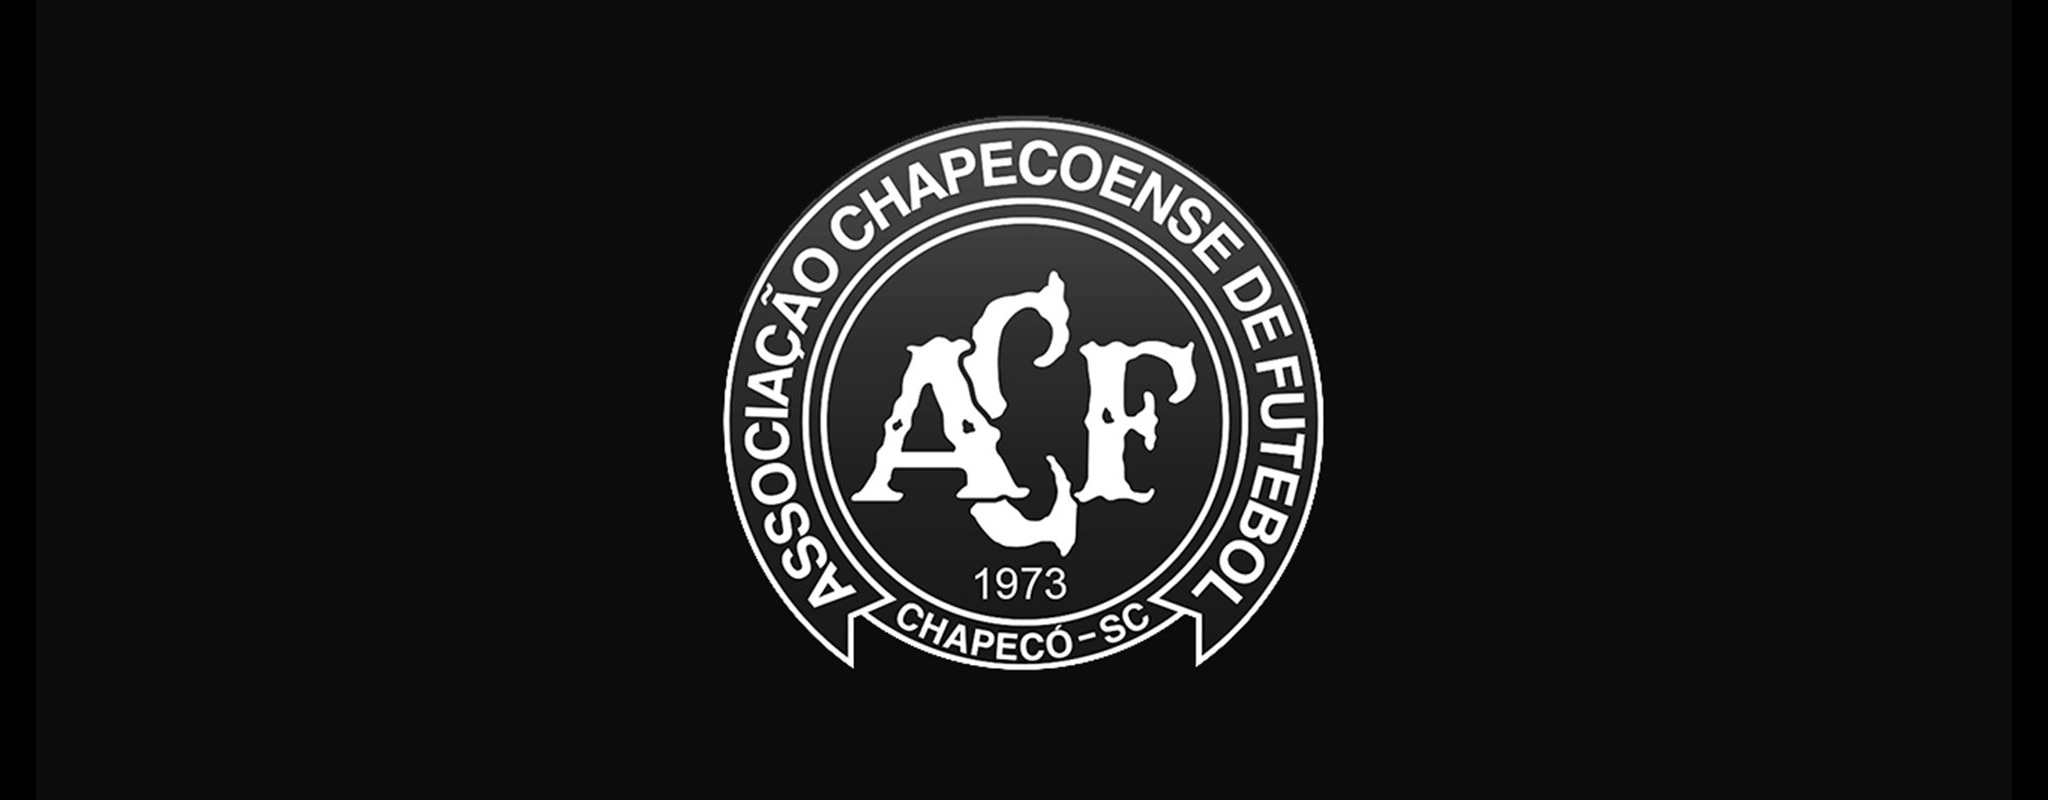 Minute's silence for Chapecoense